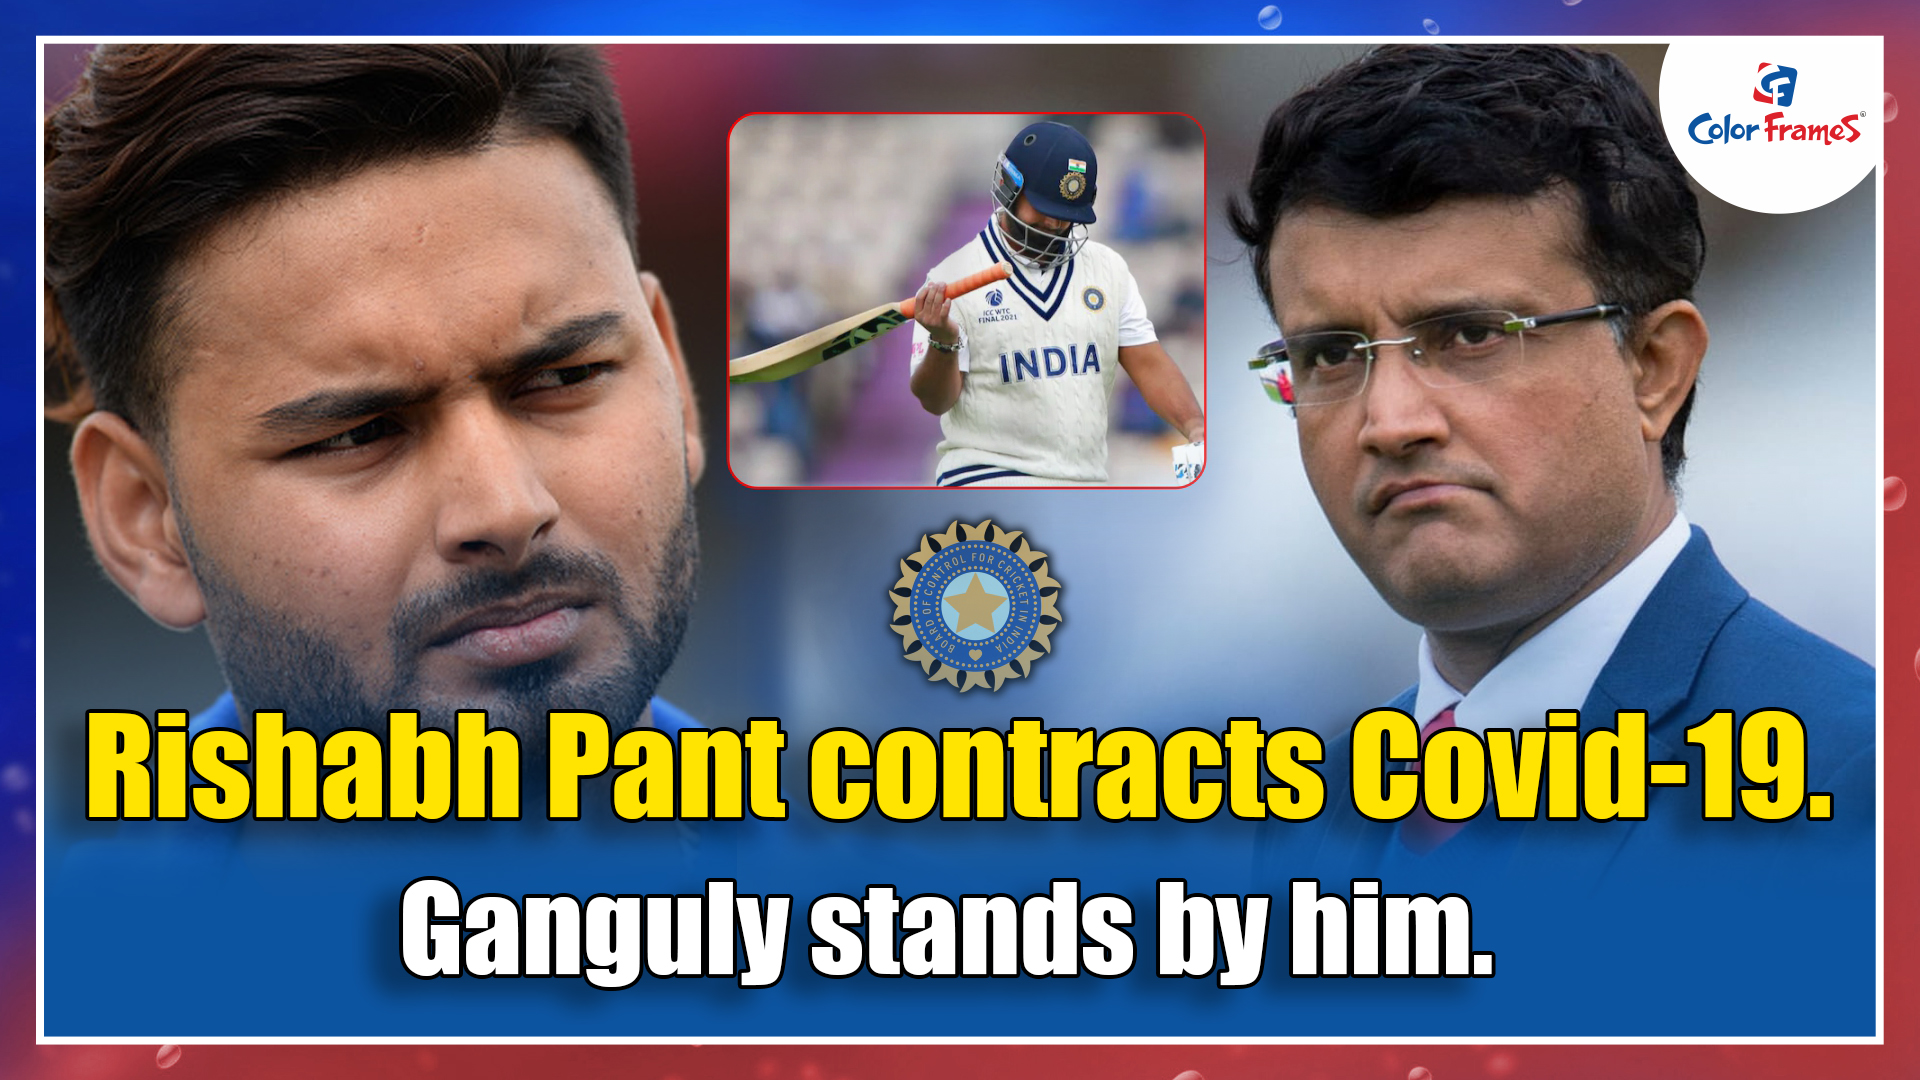 Rishabh Pant contracts Covid-19. Ganguly stands by him.